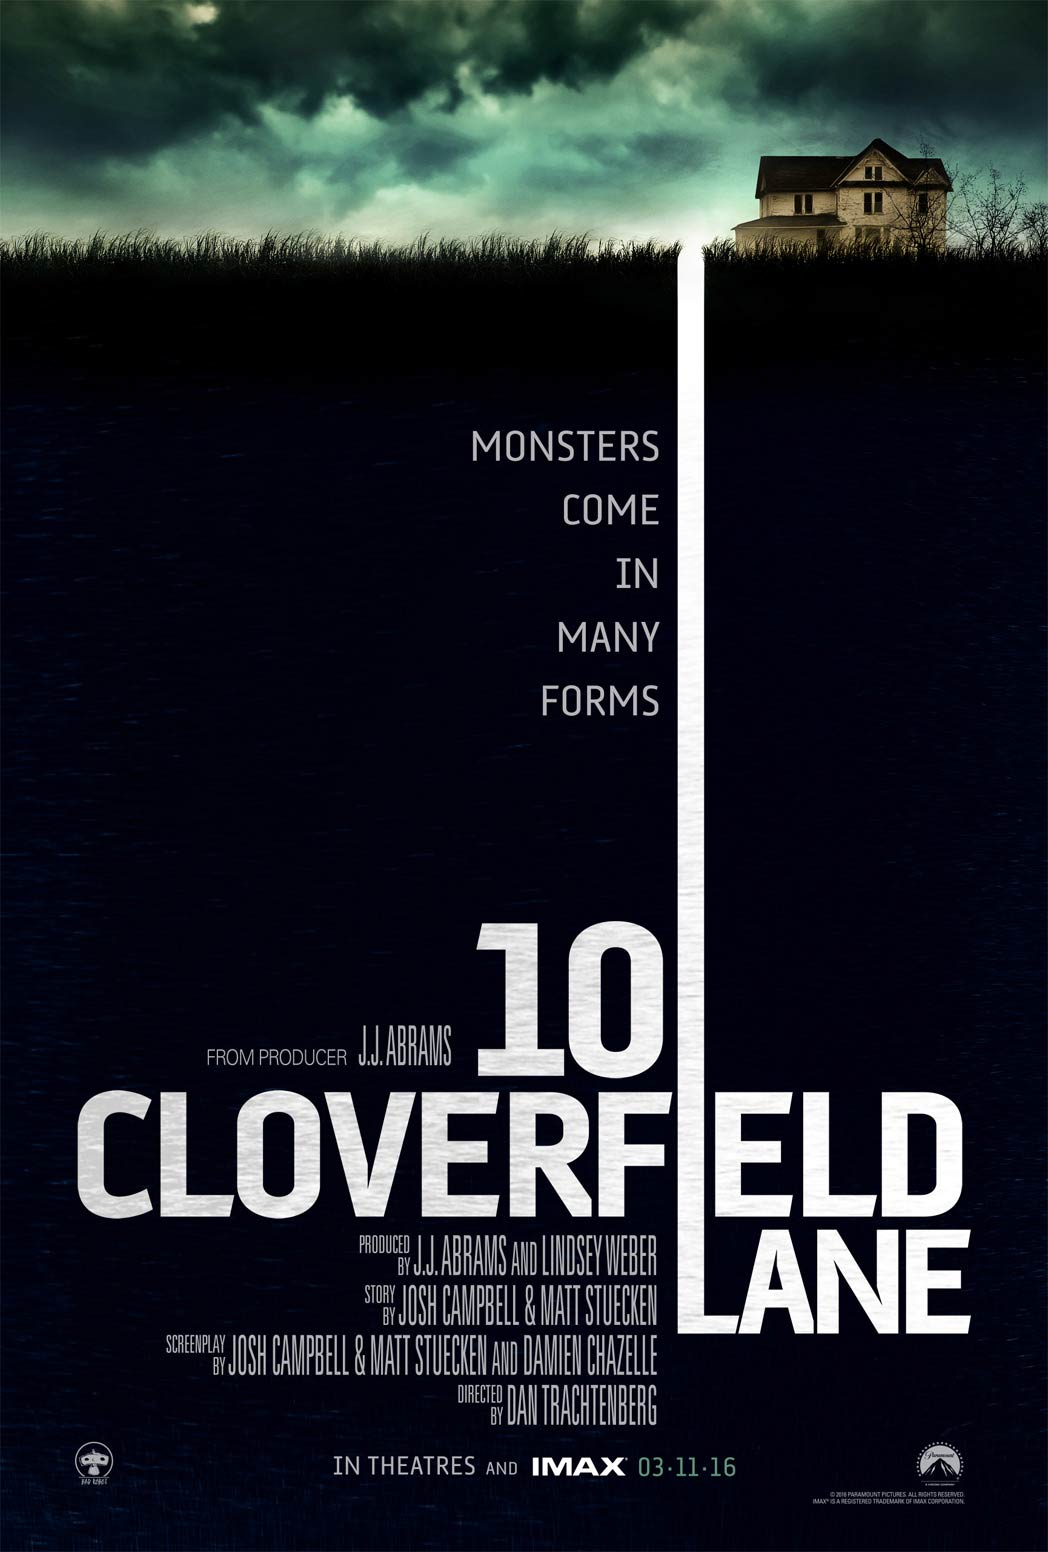 10 Cloverfield Lane (2016 film)